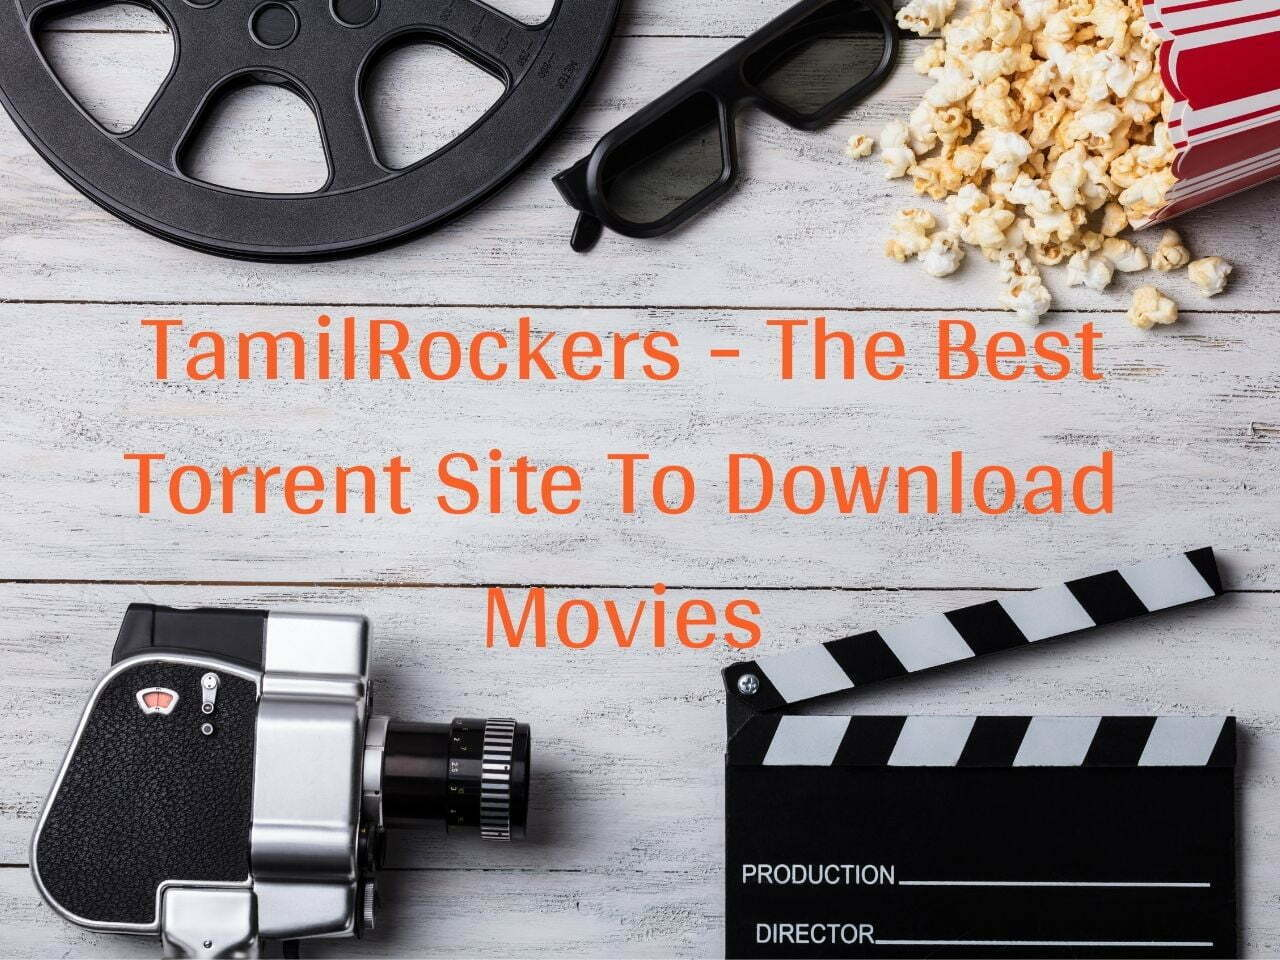 TamilRockers - The Best Torrent Site to Download Movies - Learn Forget